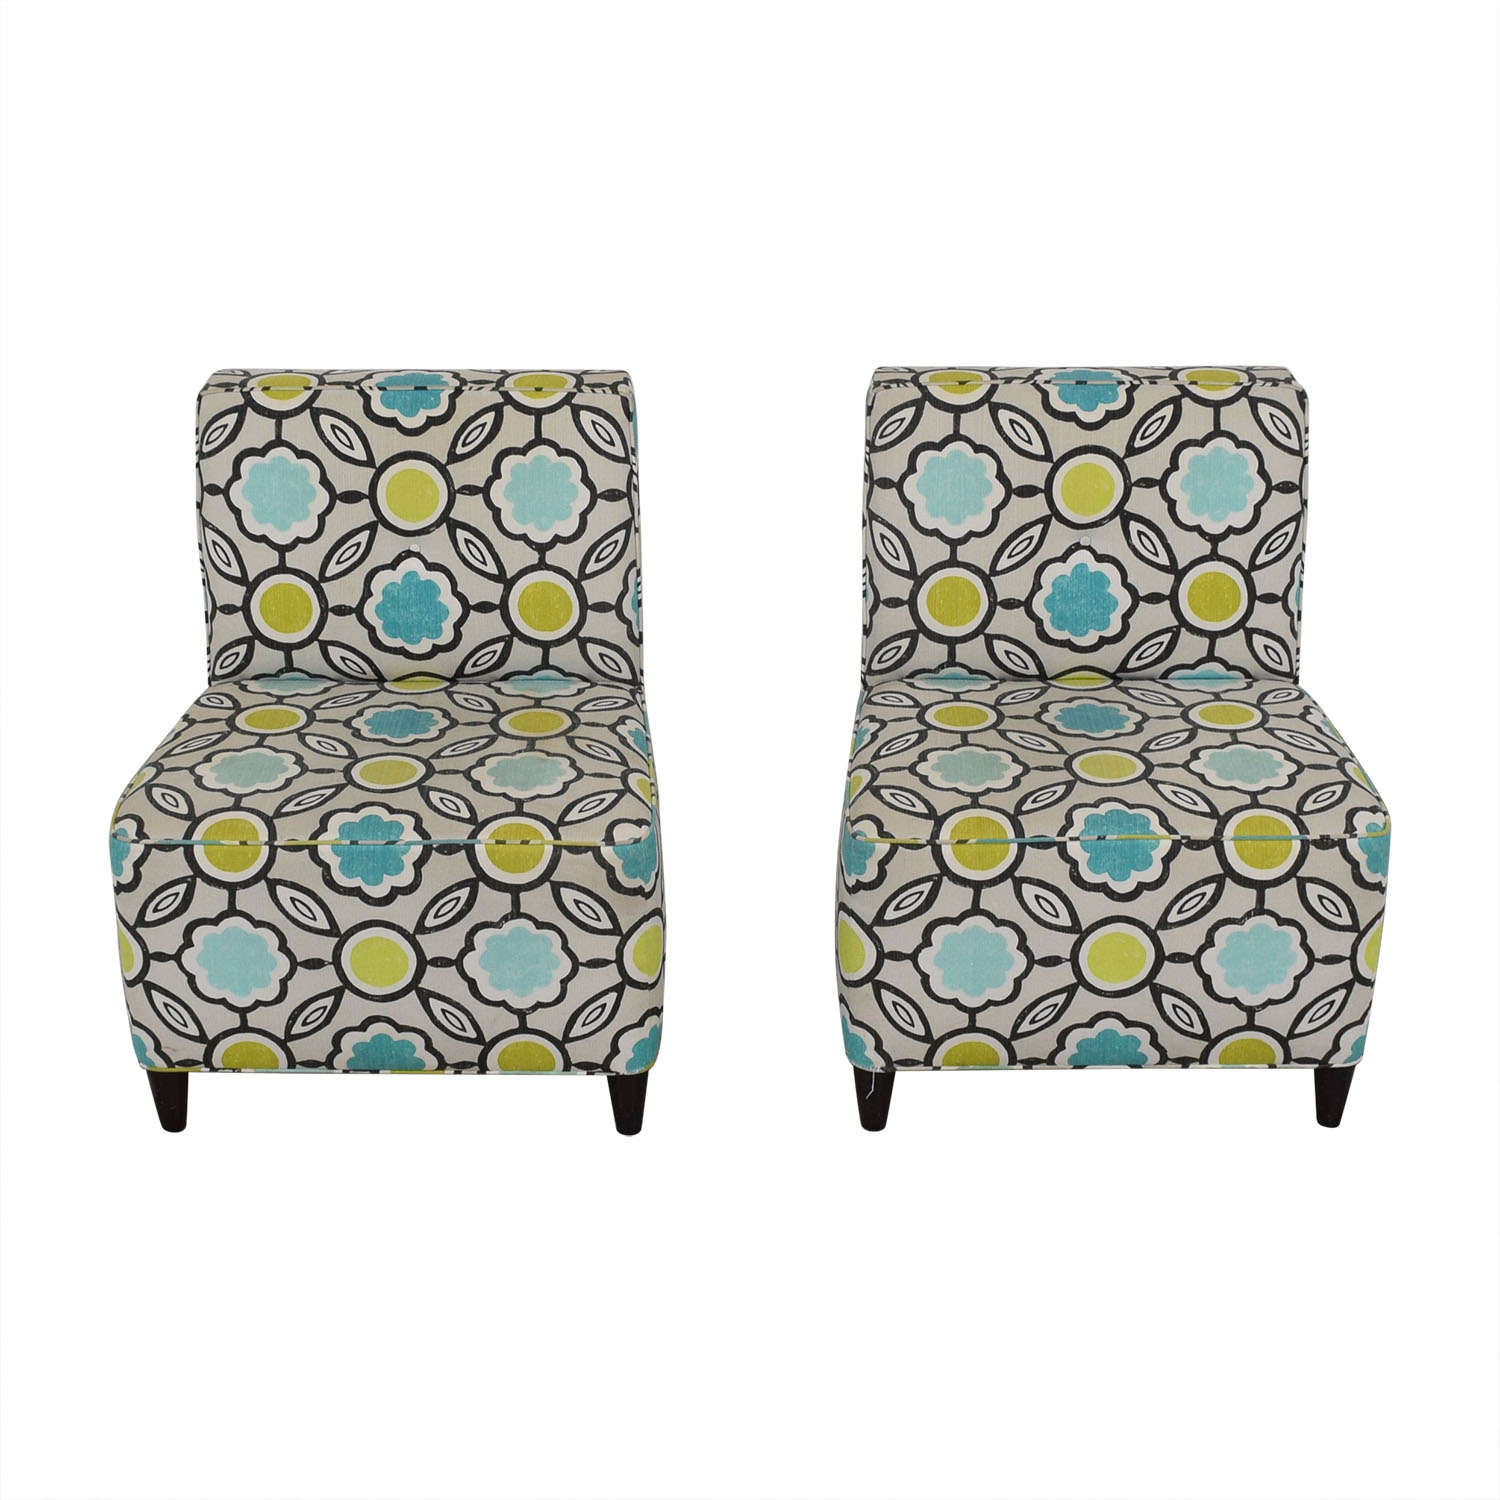 Stewart Furniture Armless Living Room Chairs / Accent Chairs